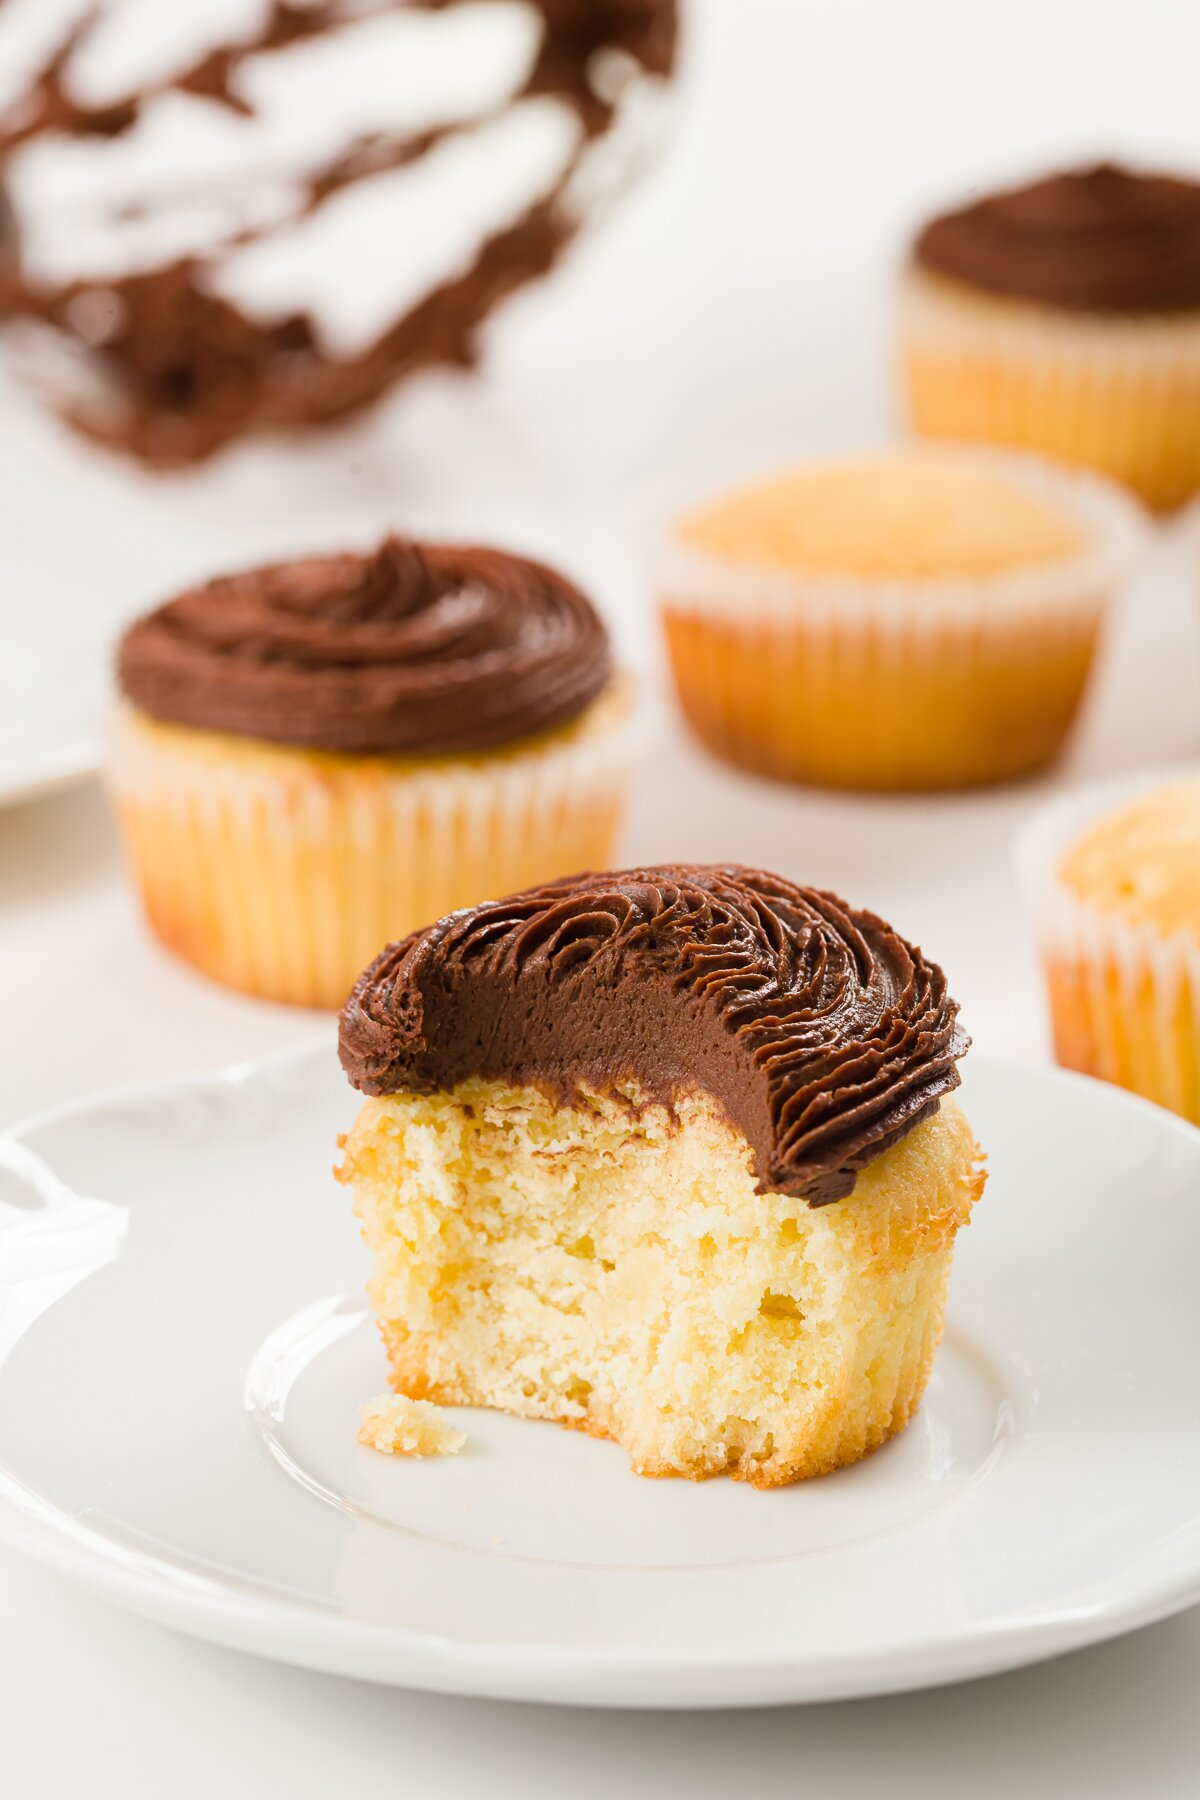 view of an interior of a pound cake cupcake frosted with chocolate ganache frosting with other cupcakes in the background